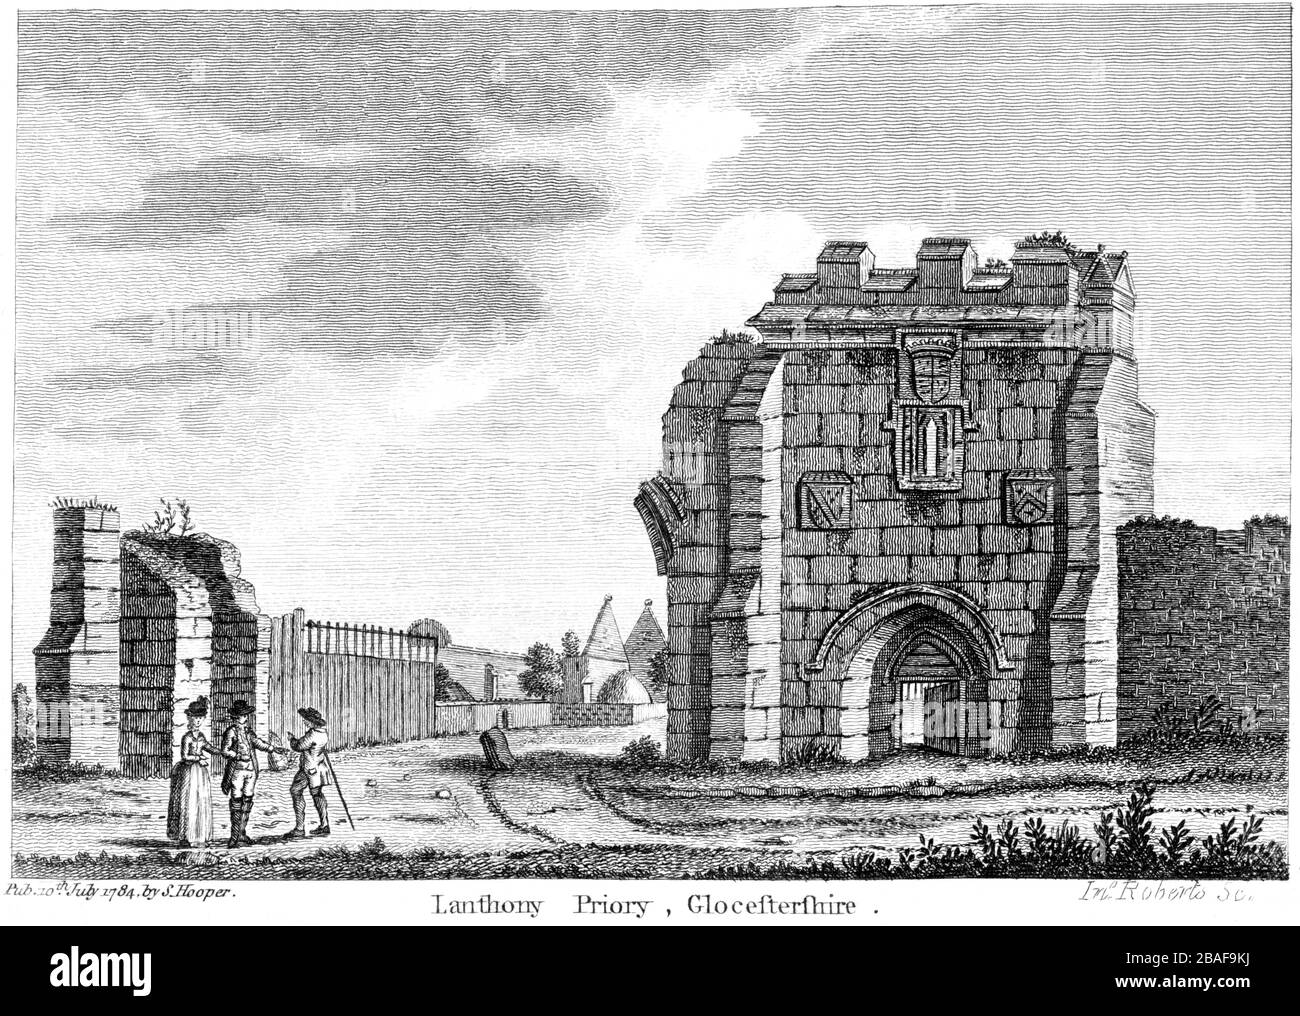 Engraving of Lanthony Priory 1784 (Llanthony Secunda Priory) Glocestershire (Gloucestershire) scanned at high res from a book published around 1786. Stock Photo